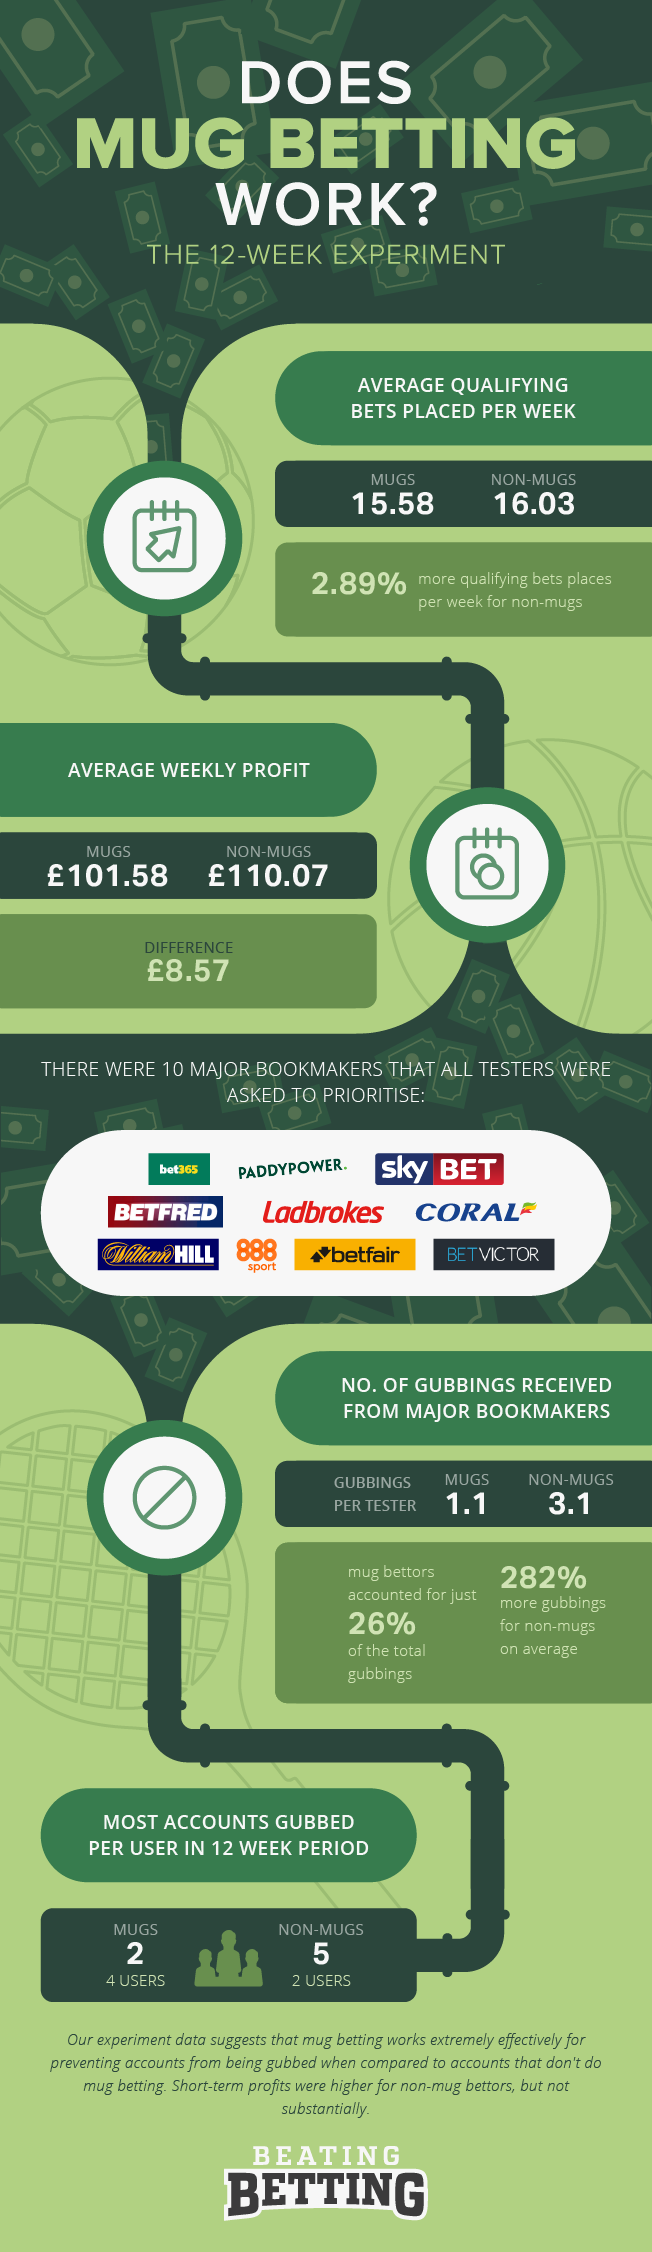 Mug betting infographic